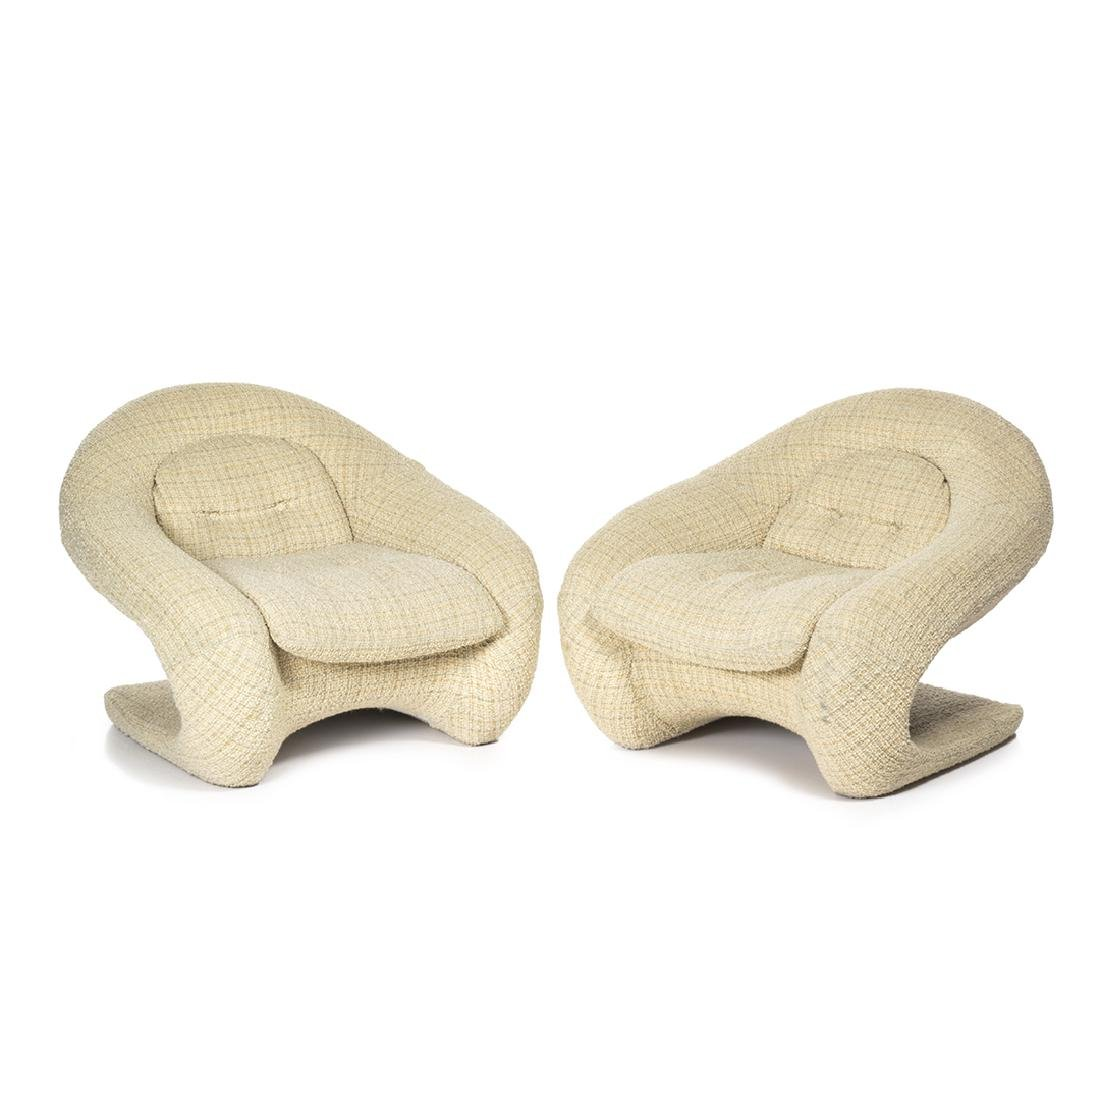 R. Huber Lounge Chairs (2)